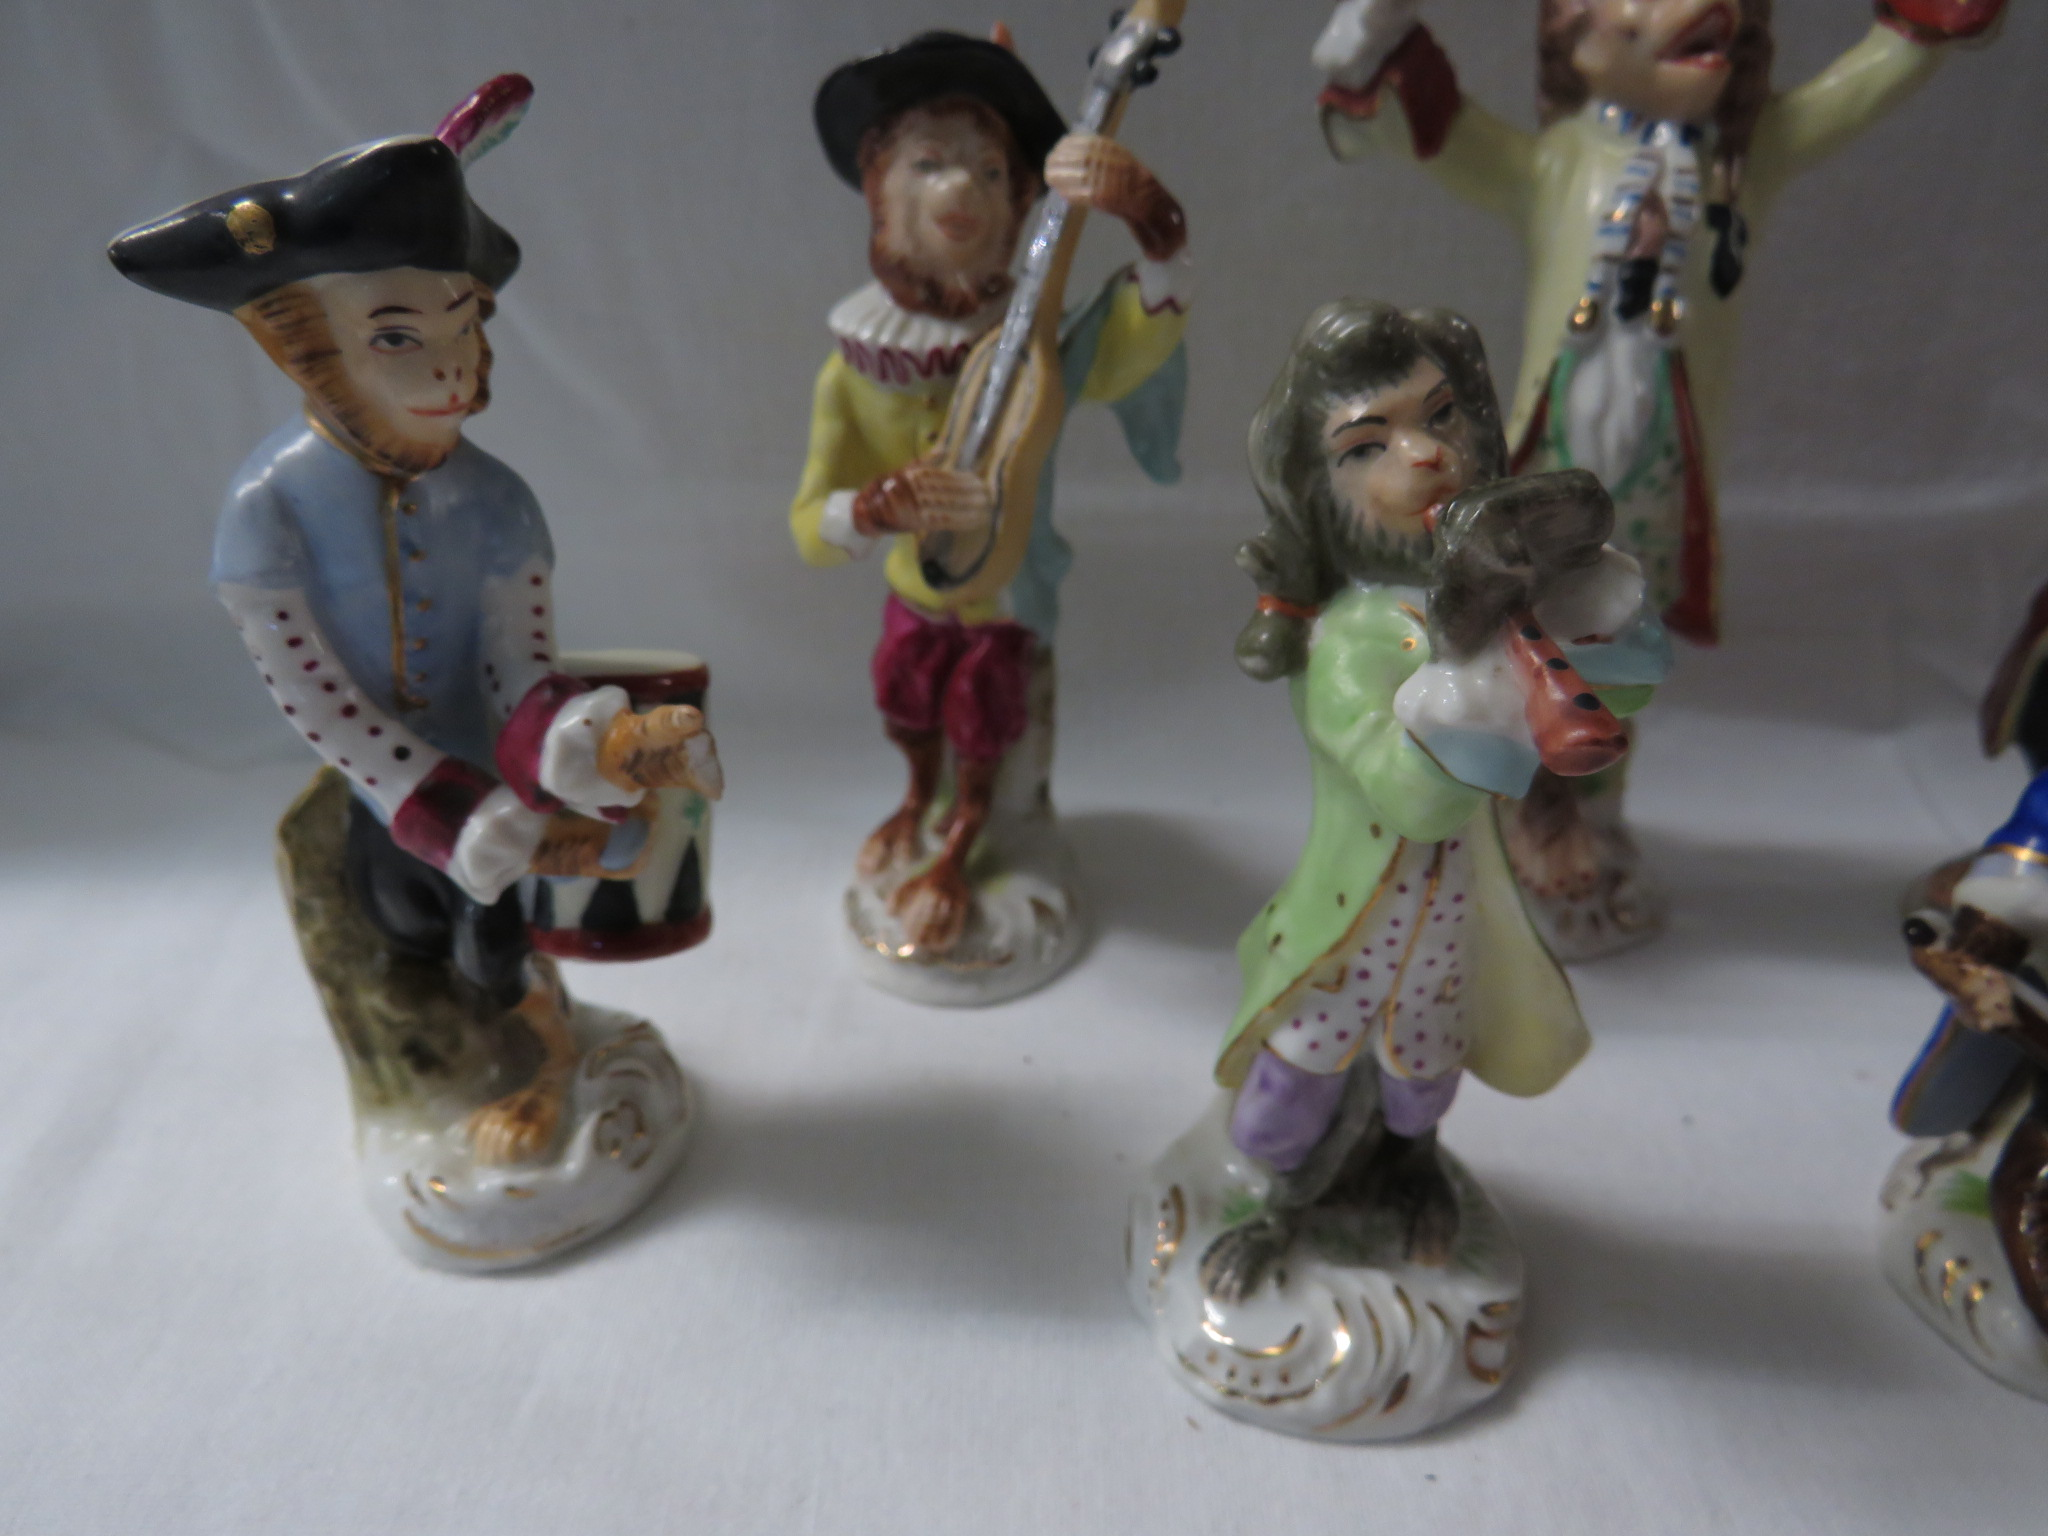 Lot 29 - A hand painted porcelain Monkey Orchestra in the style of Meissen comprising a conductor and six